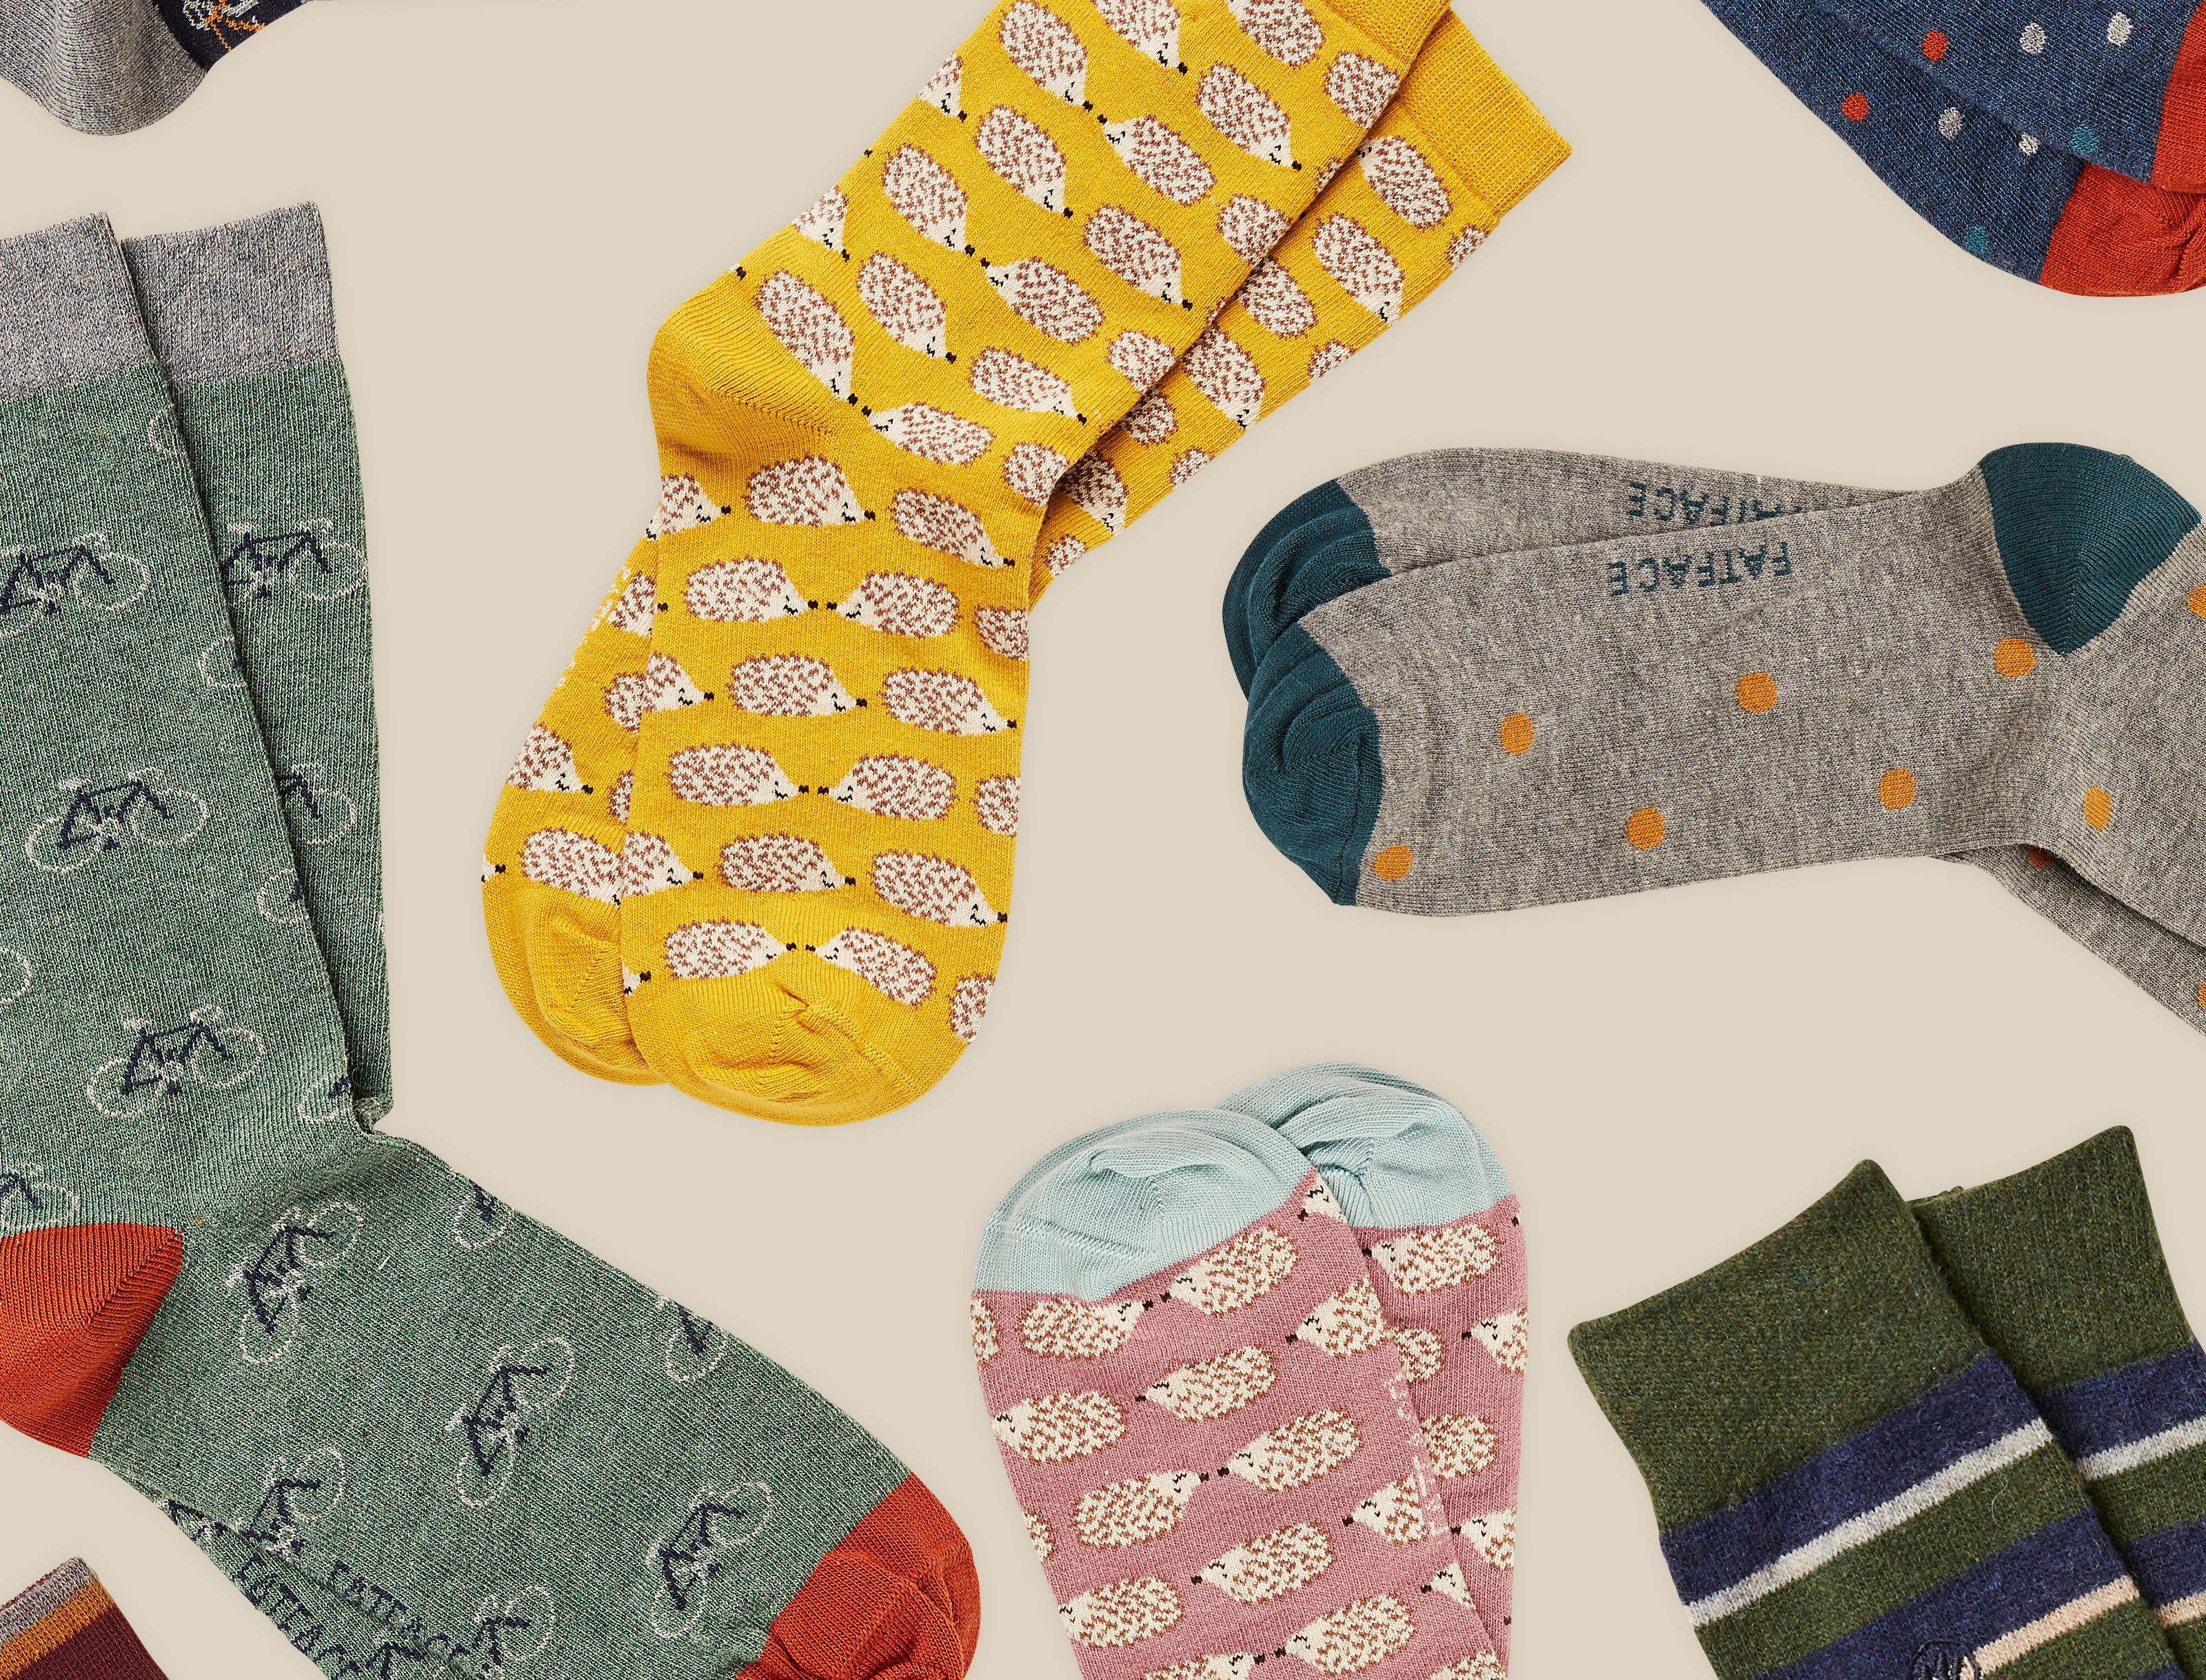 Image of mixed men's and women's printed socks.